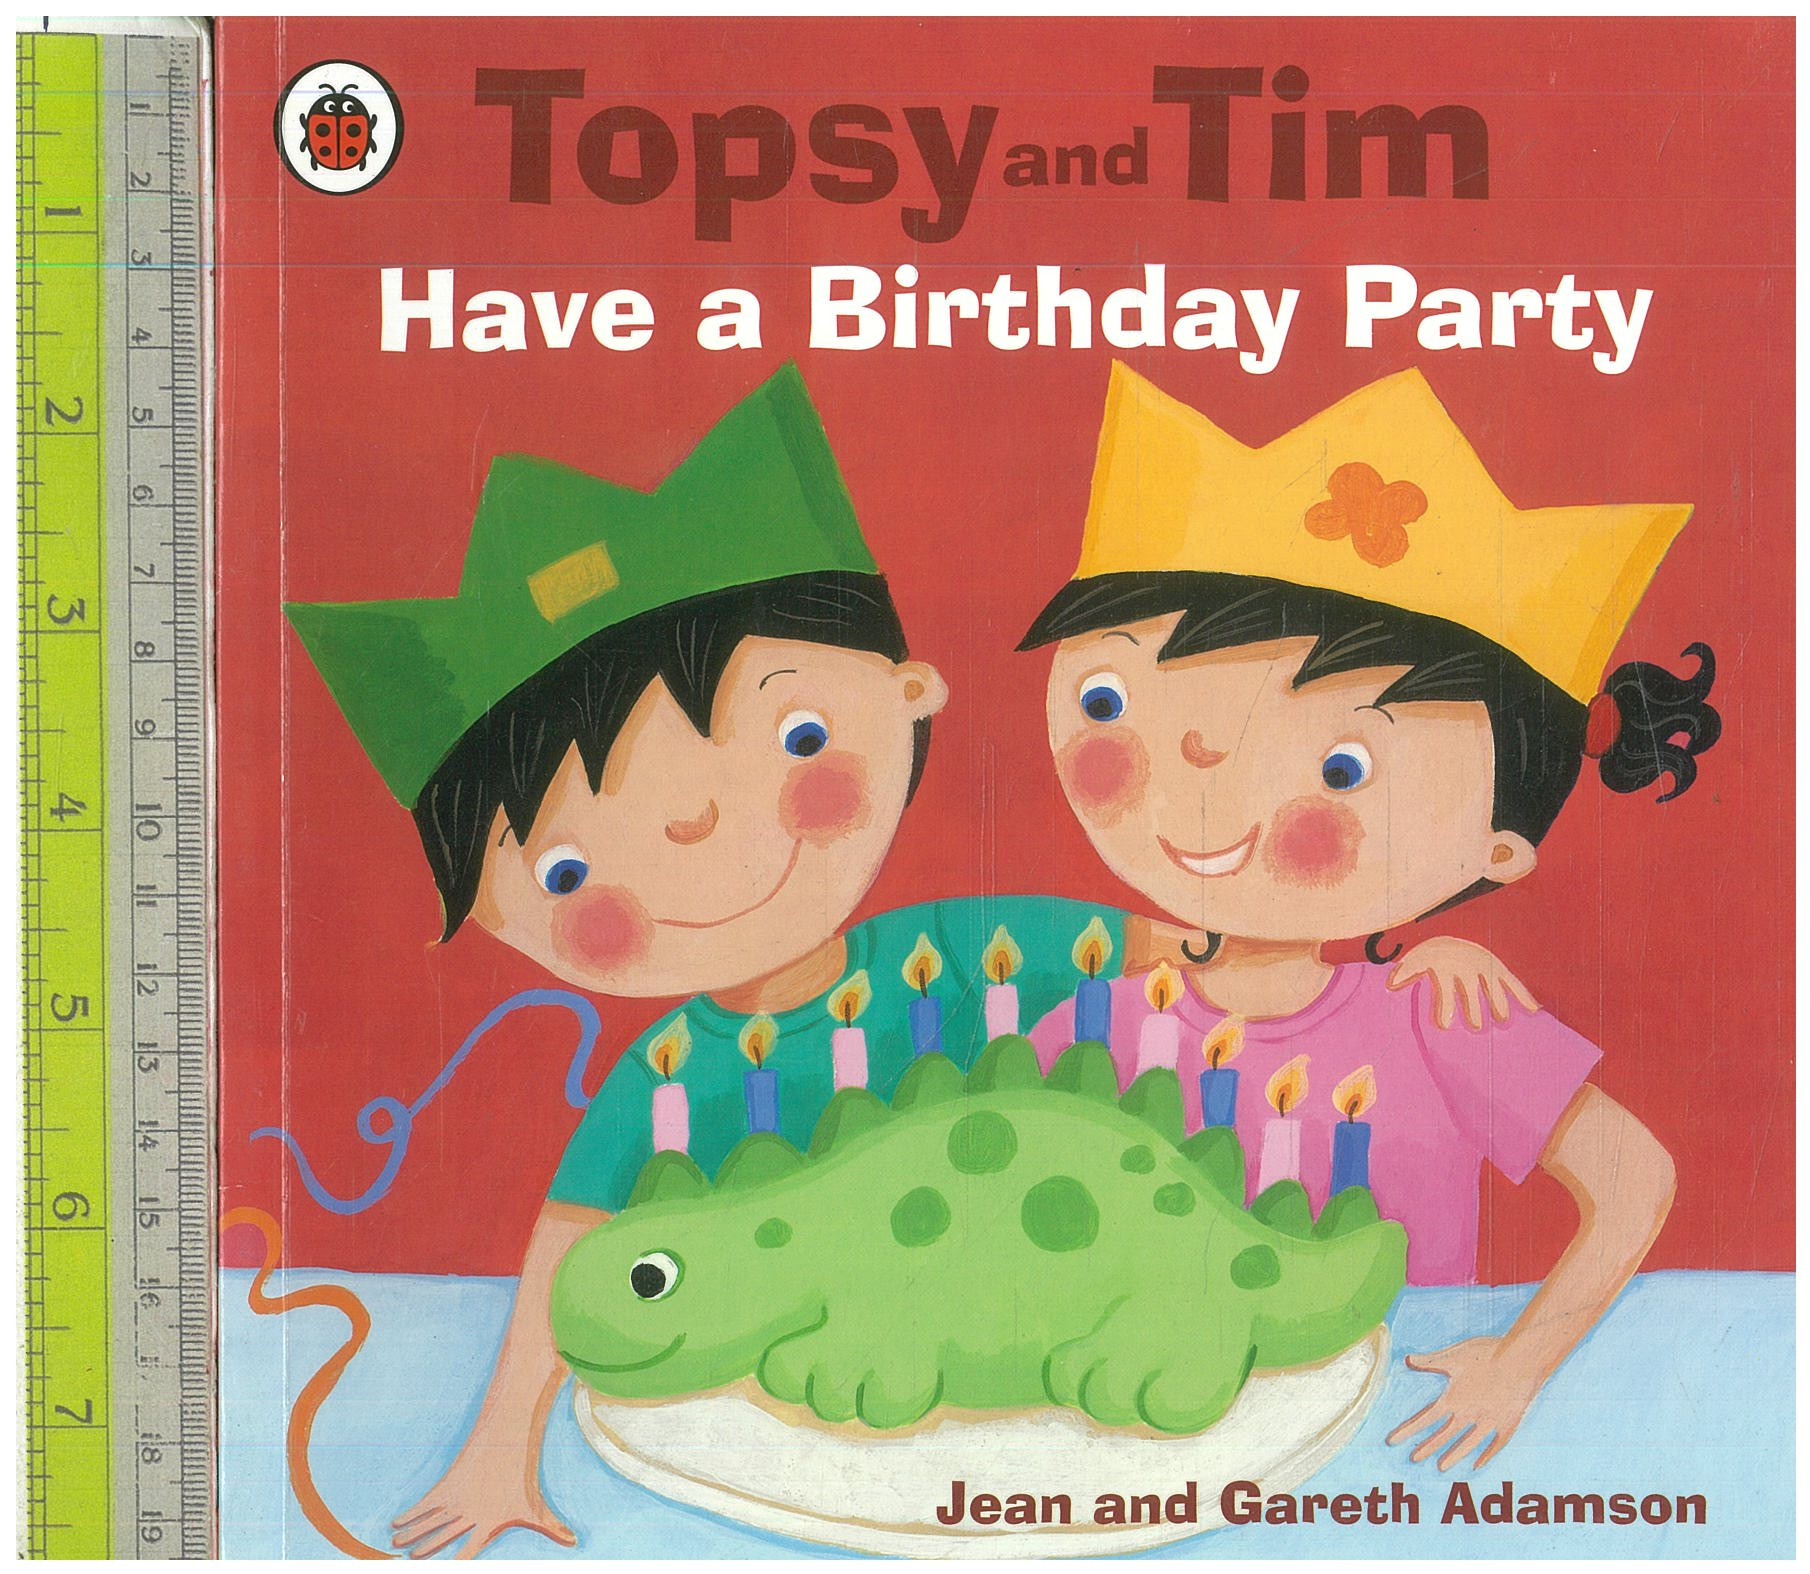 Topsy and Tim Briday Party